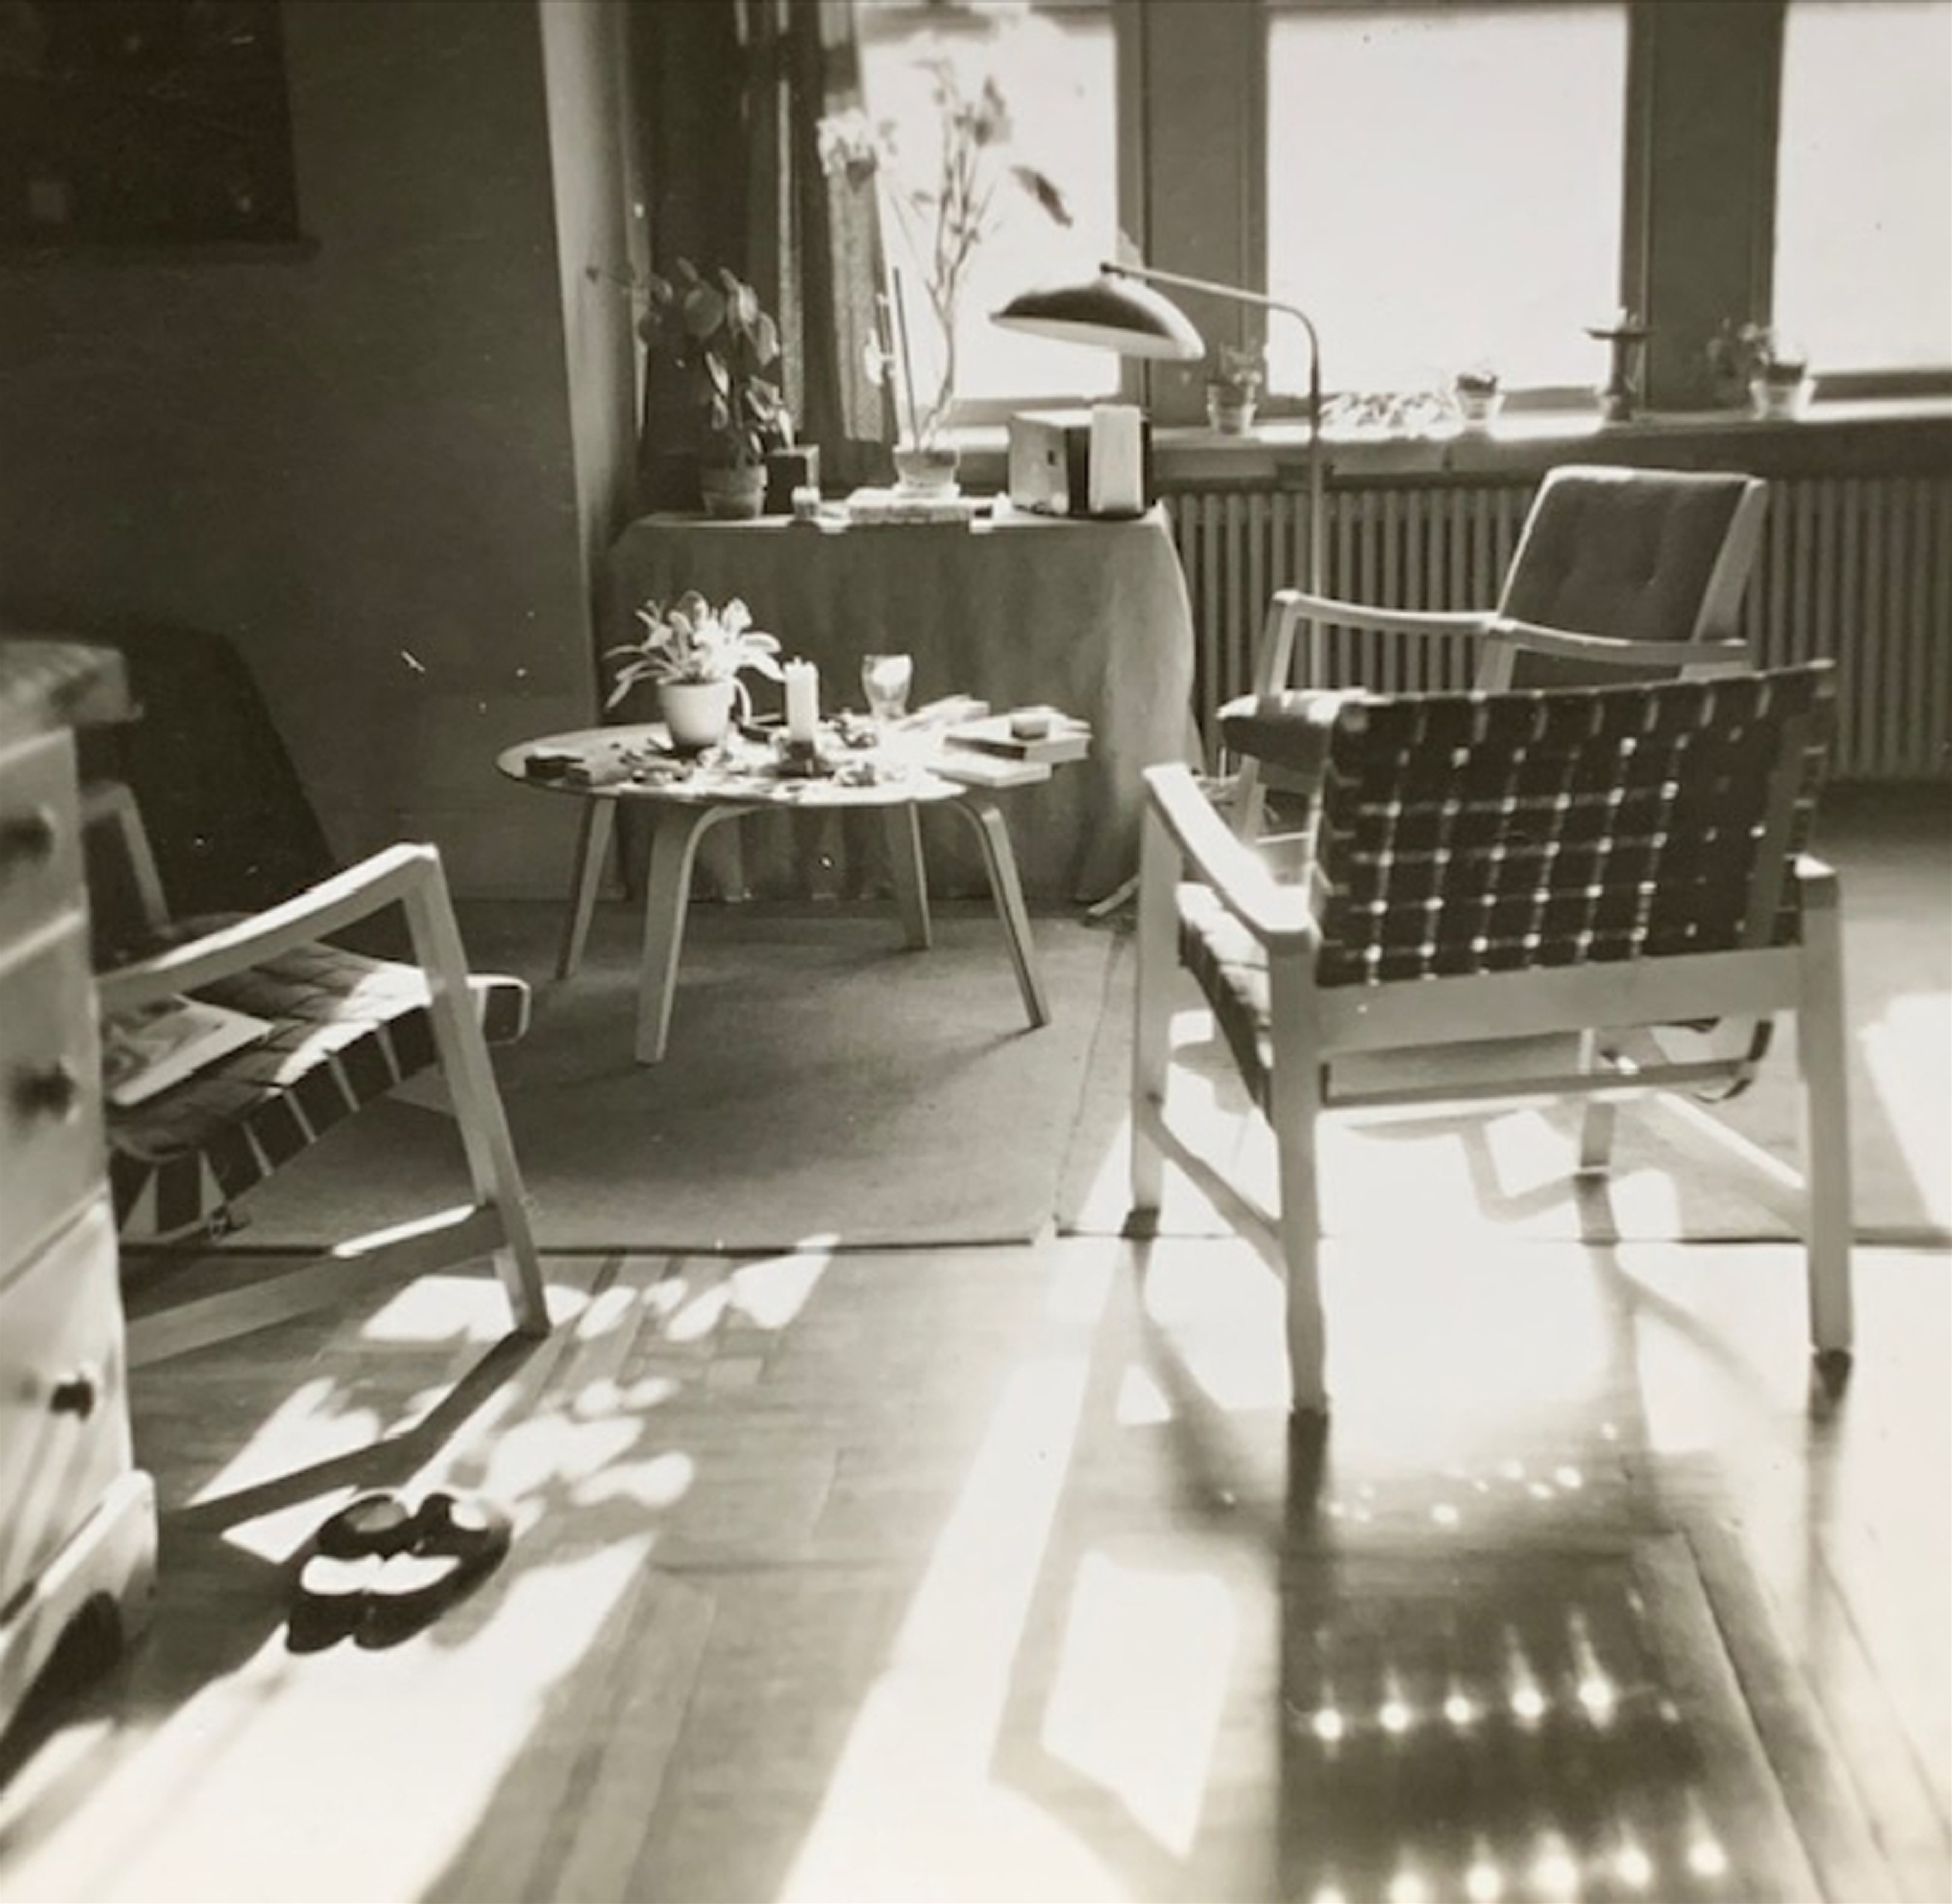 5.The John Polak Collection of Chairs in his flat in Phillidelphia